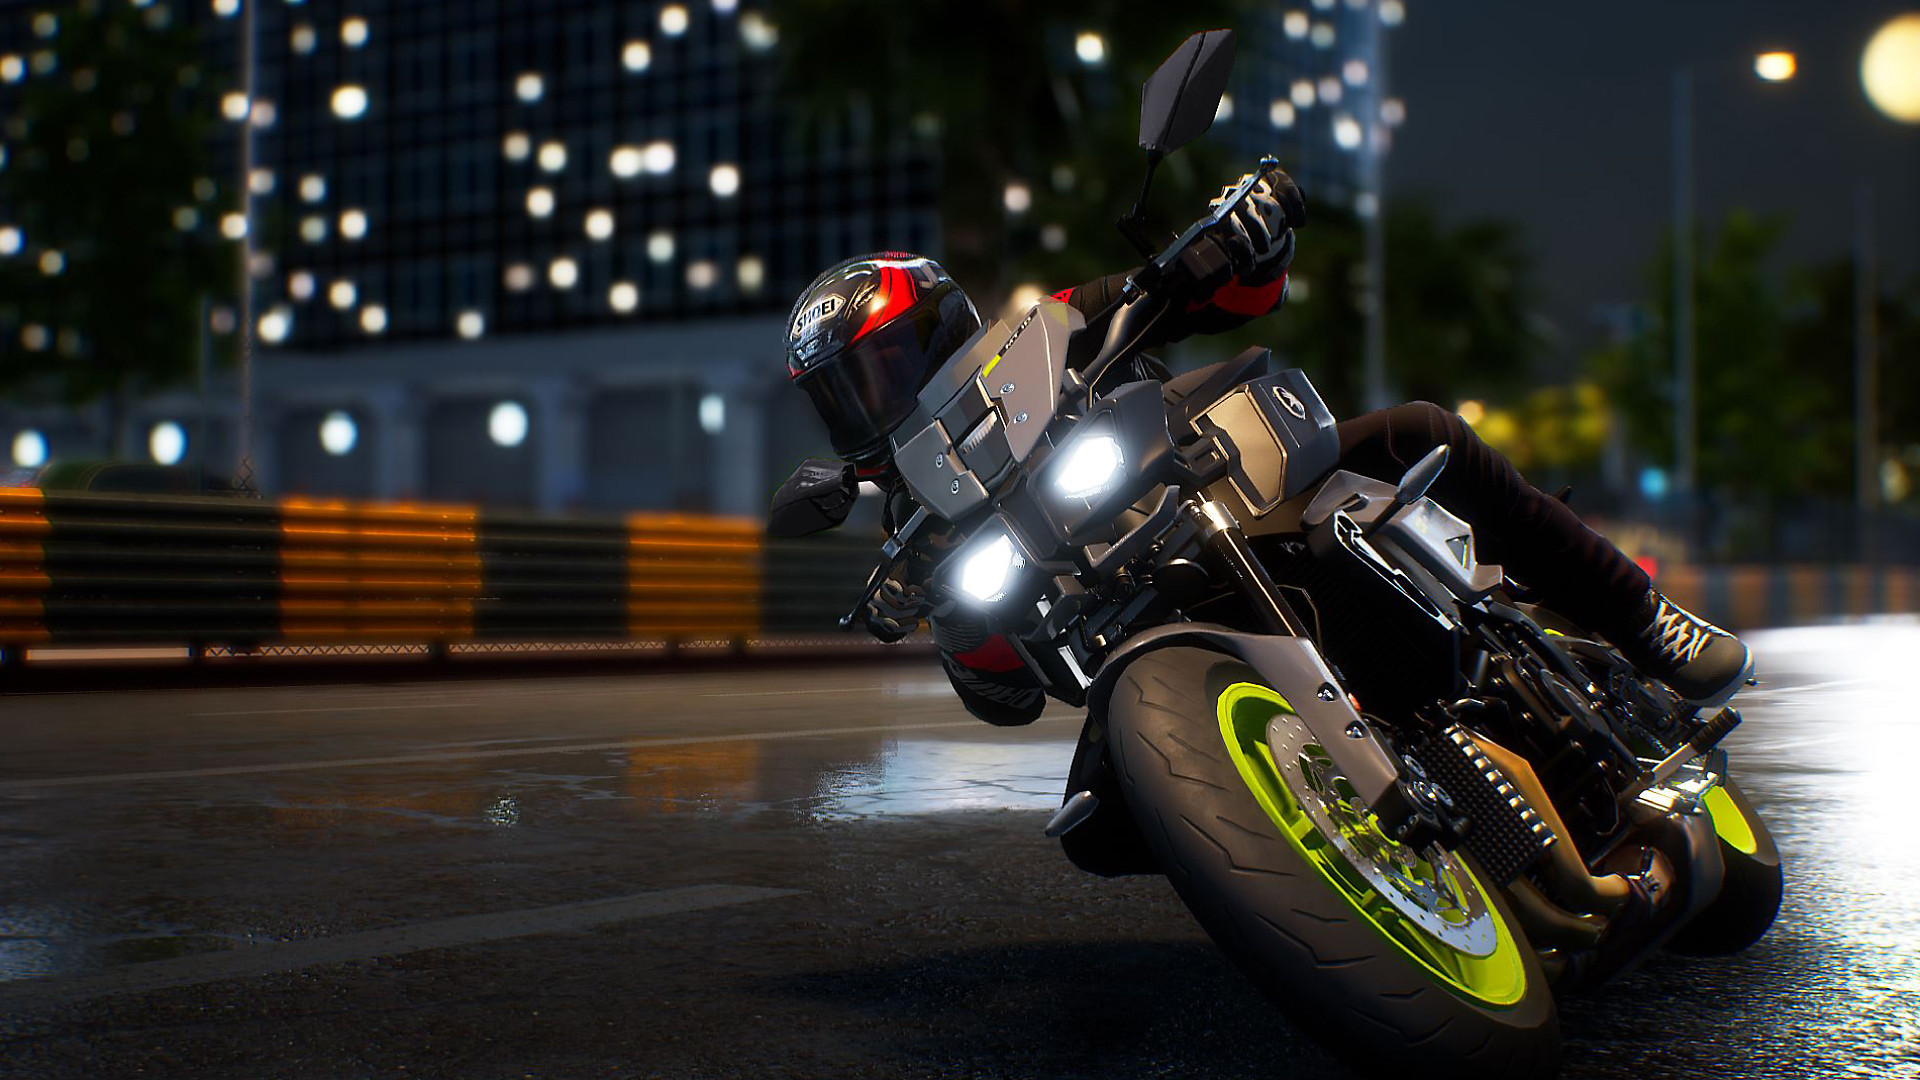 Captura de pantalla de Ride 3